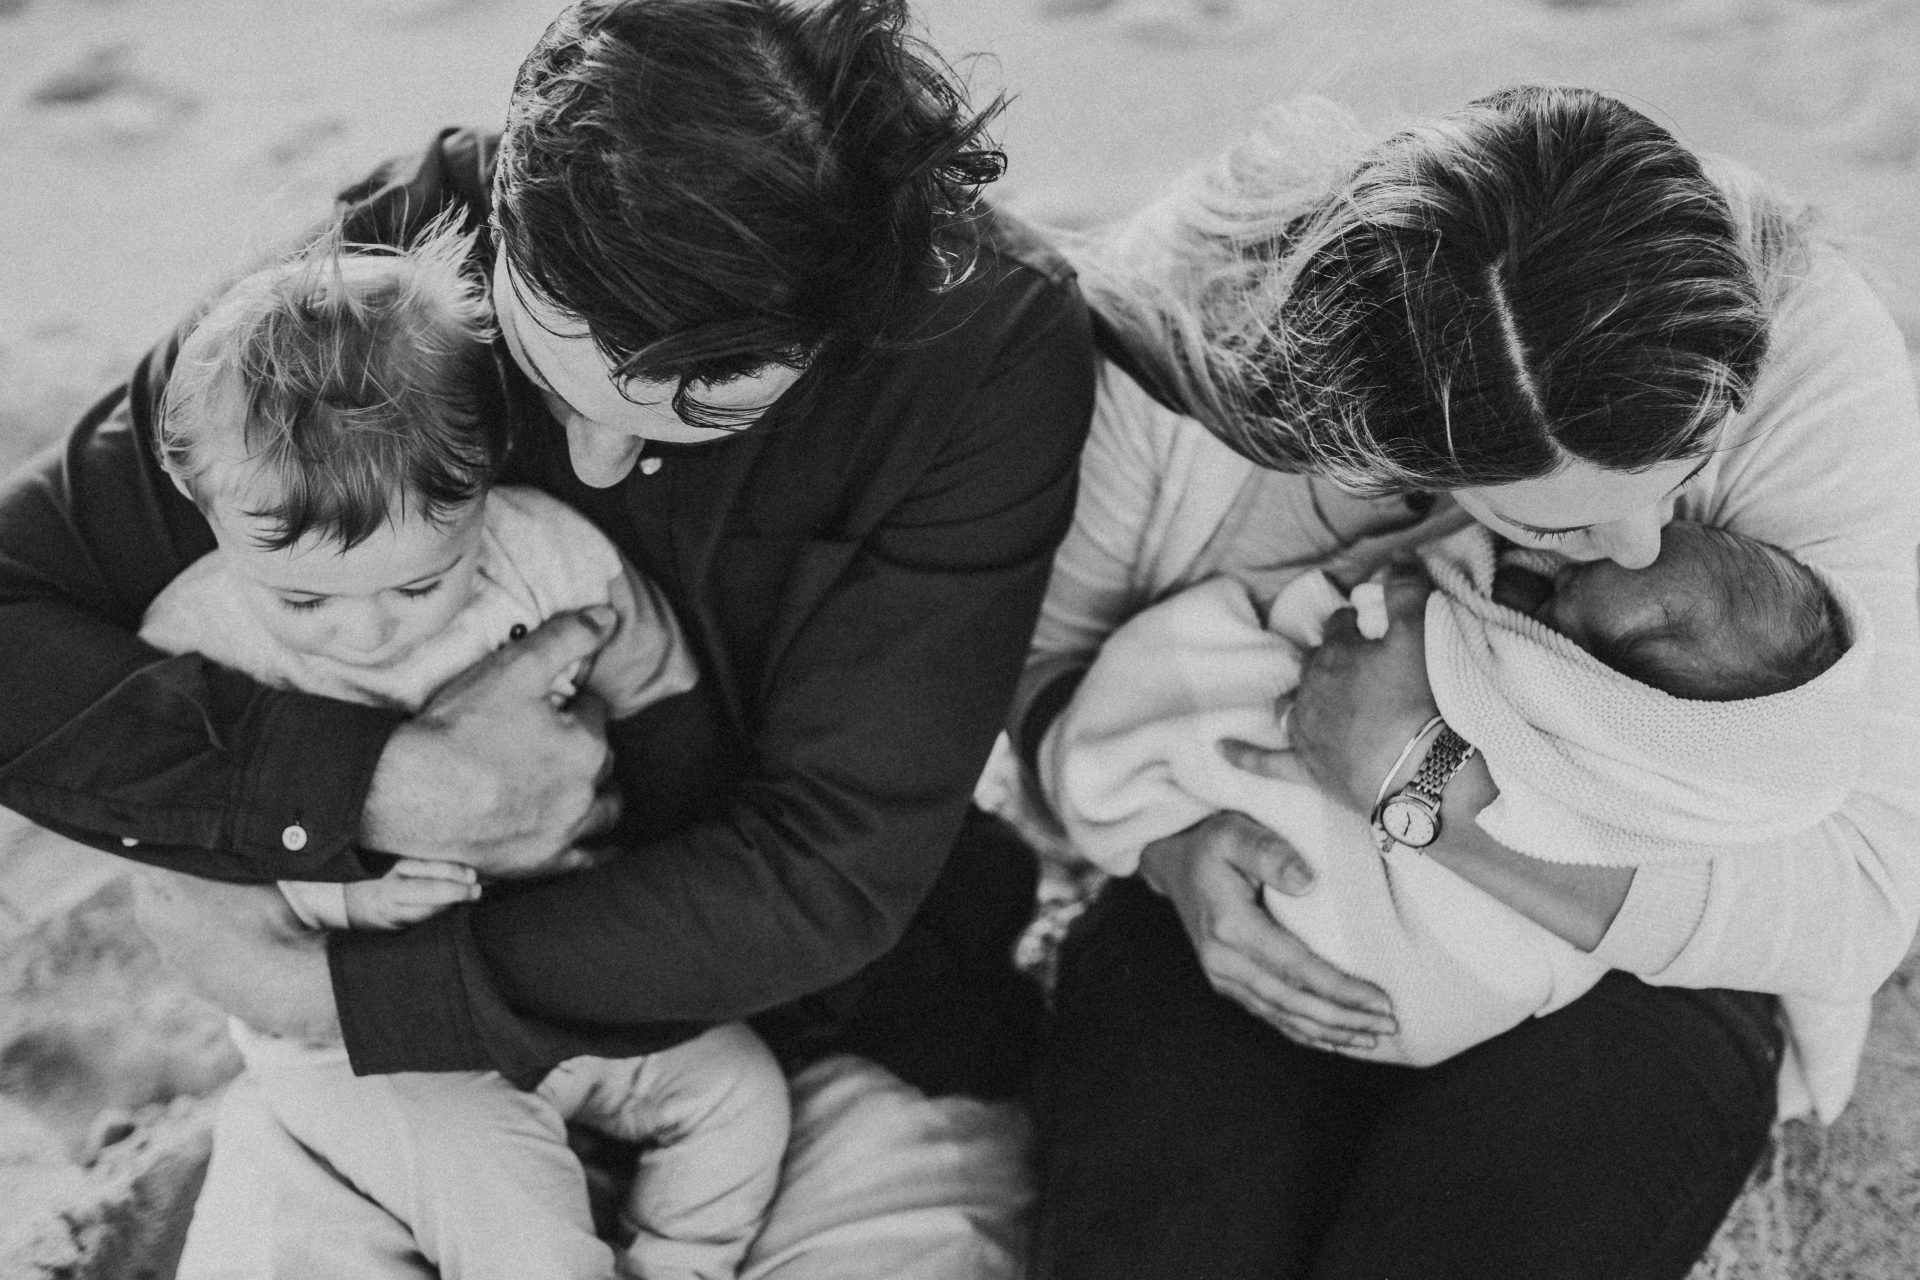 Black and white image from above of mother and father cuddling toddler and baby